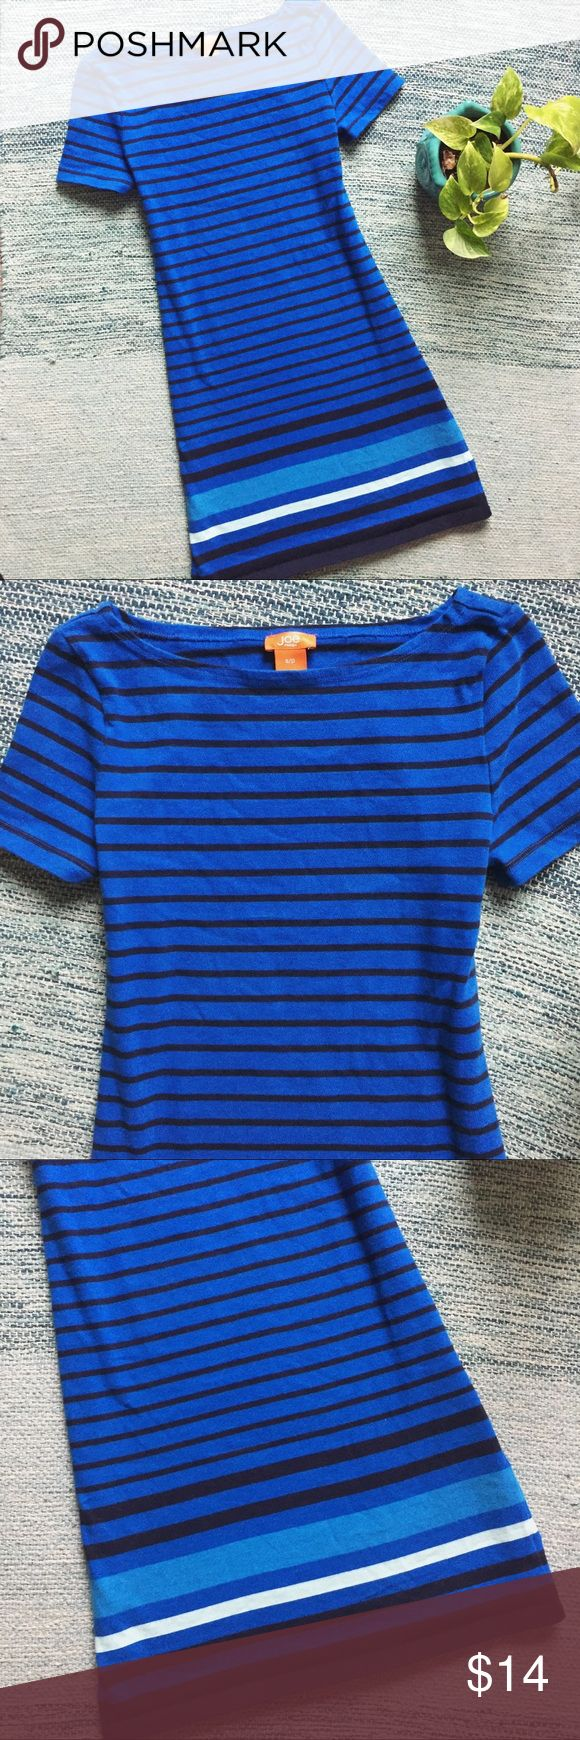 Joe Fresh Striped Knit Shirtdress Gently loved. Some light pilling, but still good condition!   Short sleeve tee shirt dress in a stretchy / heavier knit fabric. Vibrant shades royal blue, sky blue, white, and black stripes throughout.   Brand : Joe Fresh  Size : Small  If you have any questions, feel free to ask. Bundle more items for better discounts. Reasonable offers only please. Happy shopping! Joe Fresh Dresses